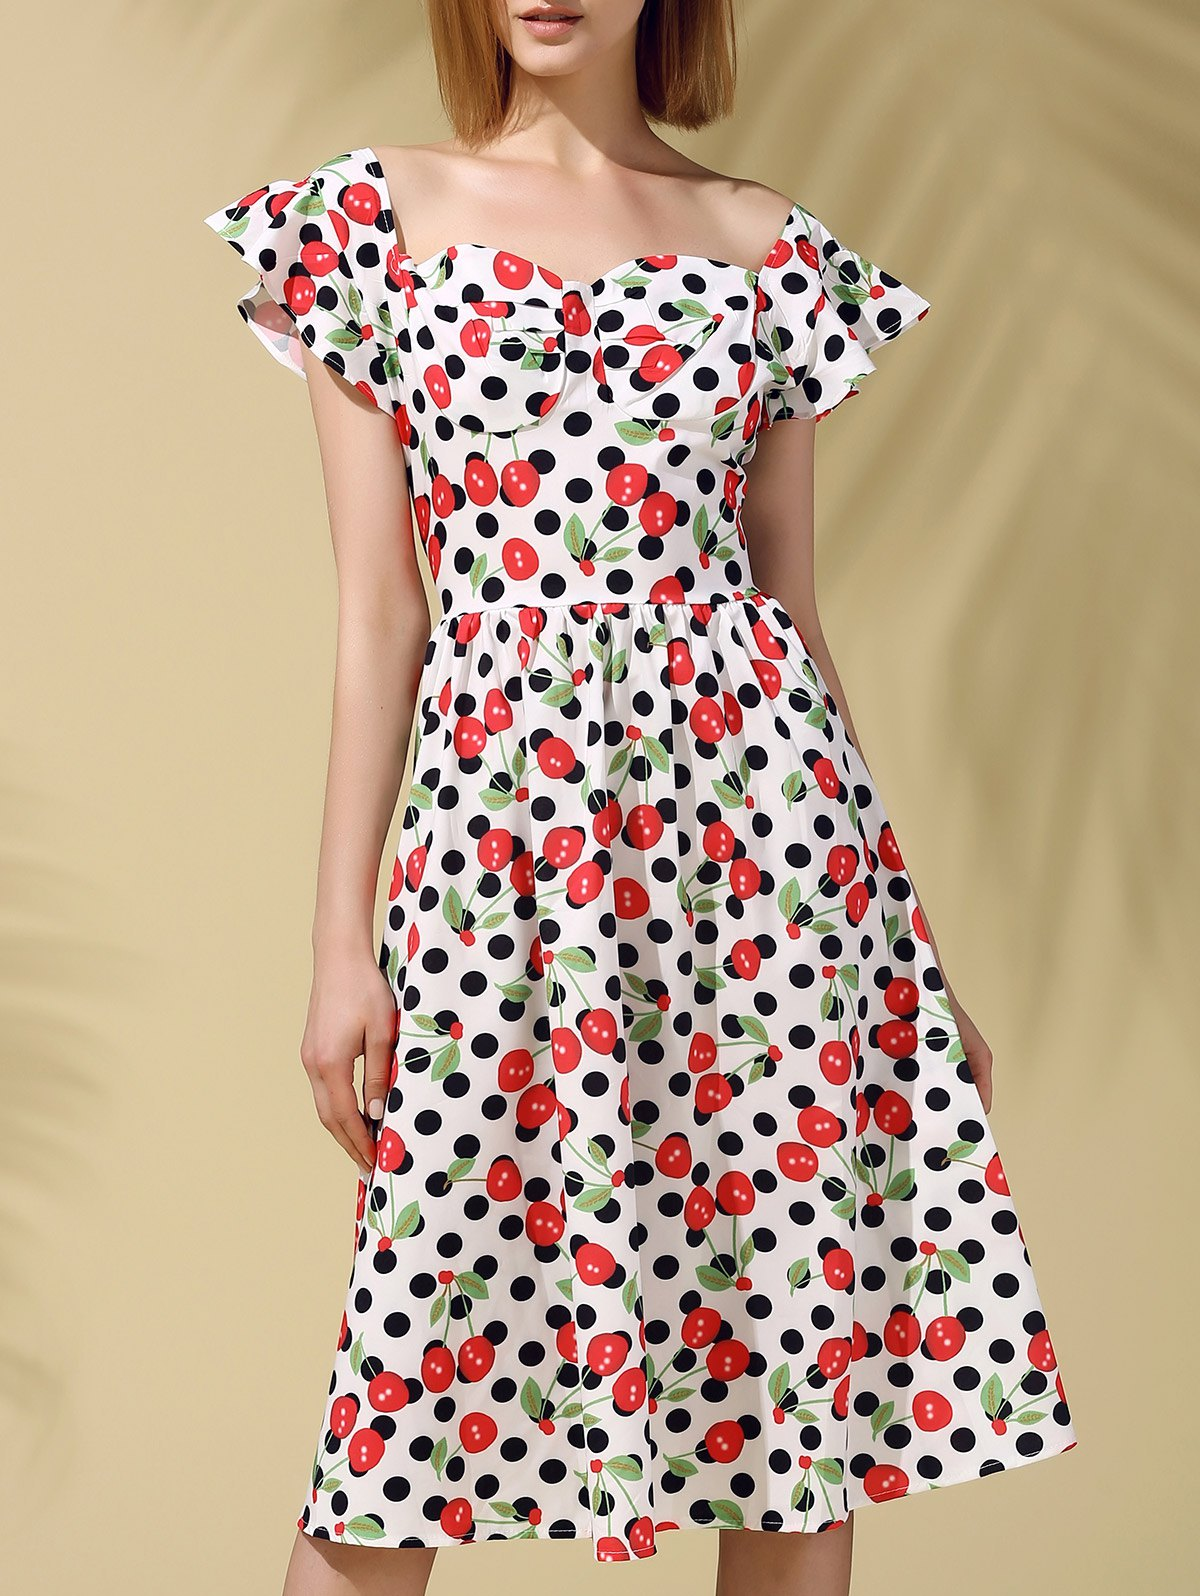 Retro Style Cherry Print Polka Dot Slimming Women's Dress